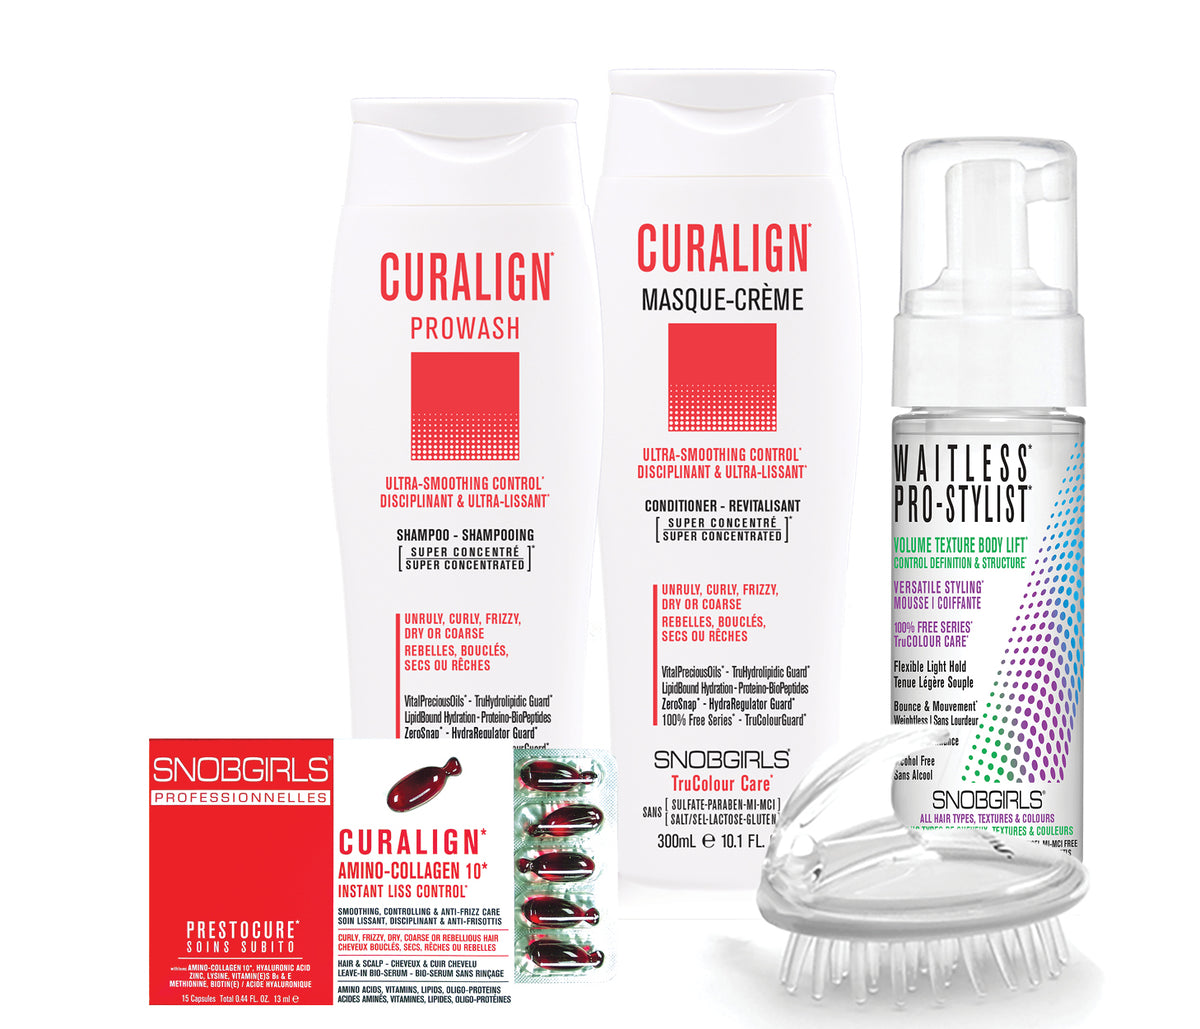 CURALIGN BOX ULTRA-SMOOTHING CONTROL Bundle - SNOBGIRLS.com